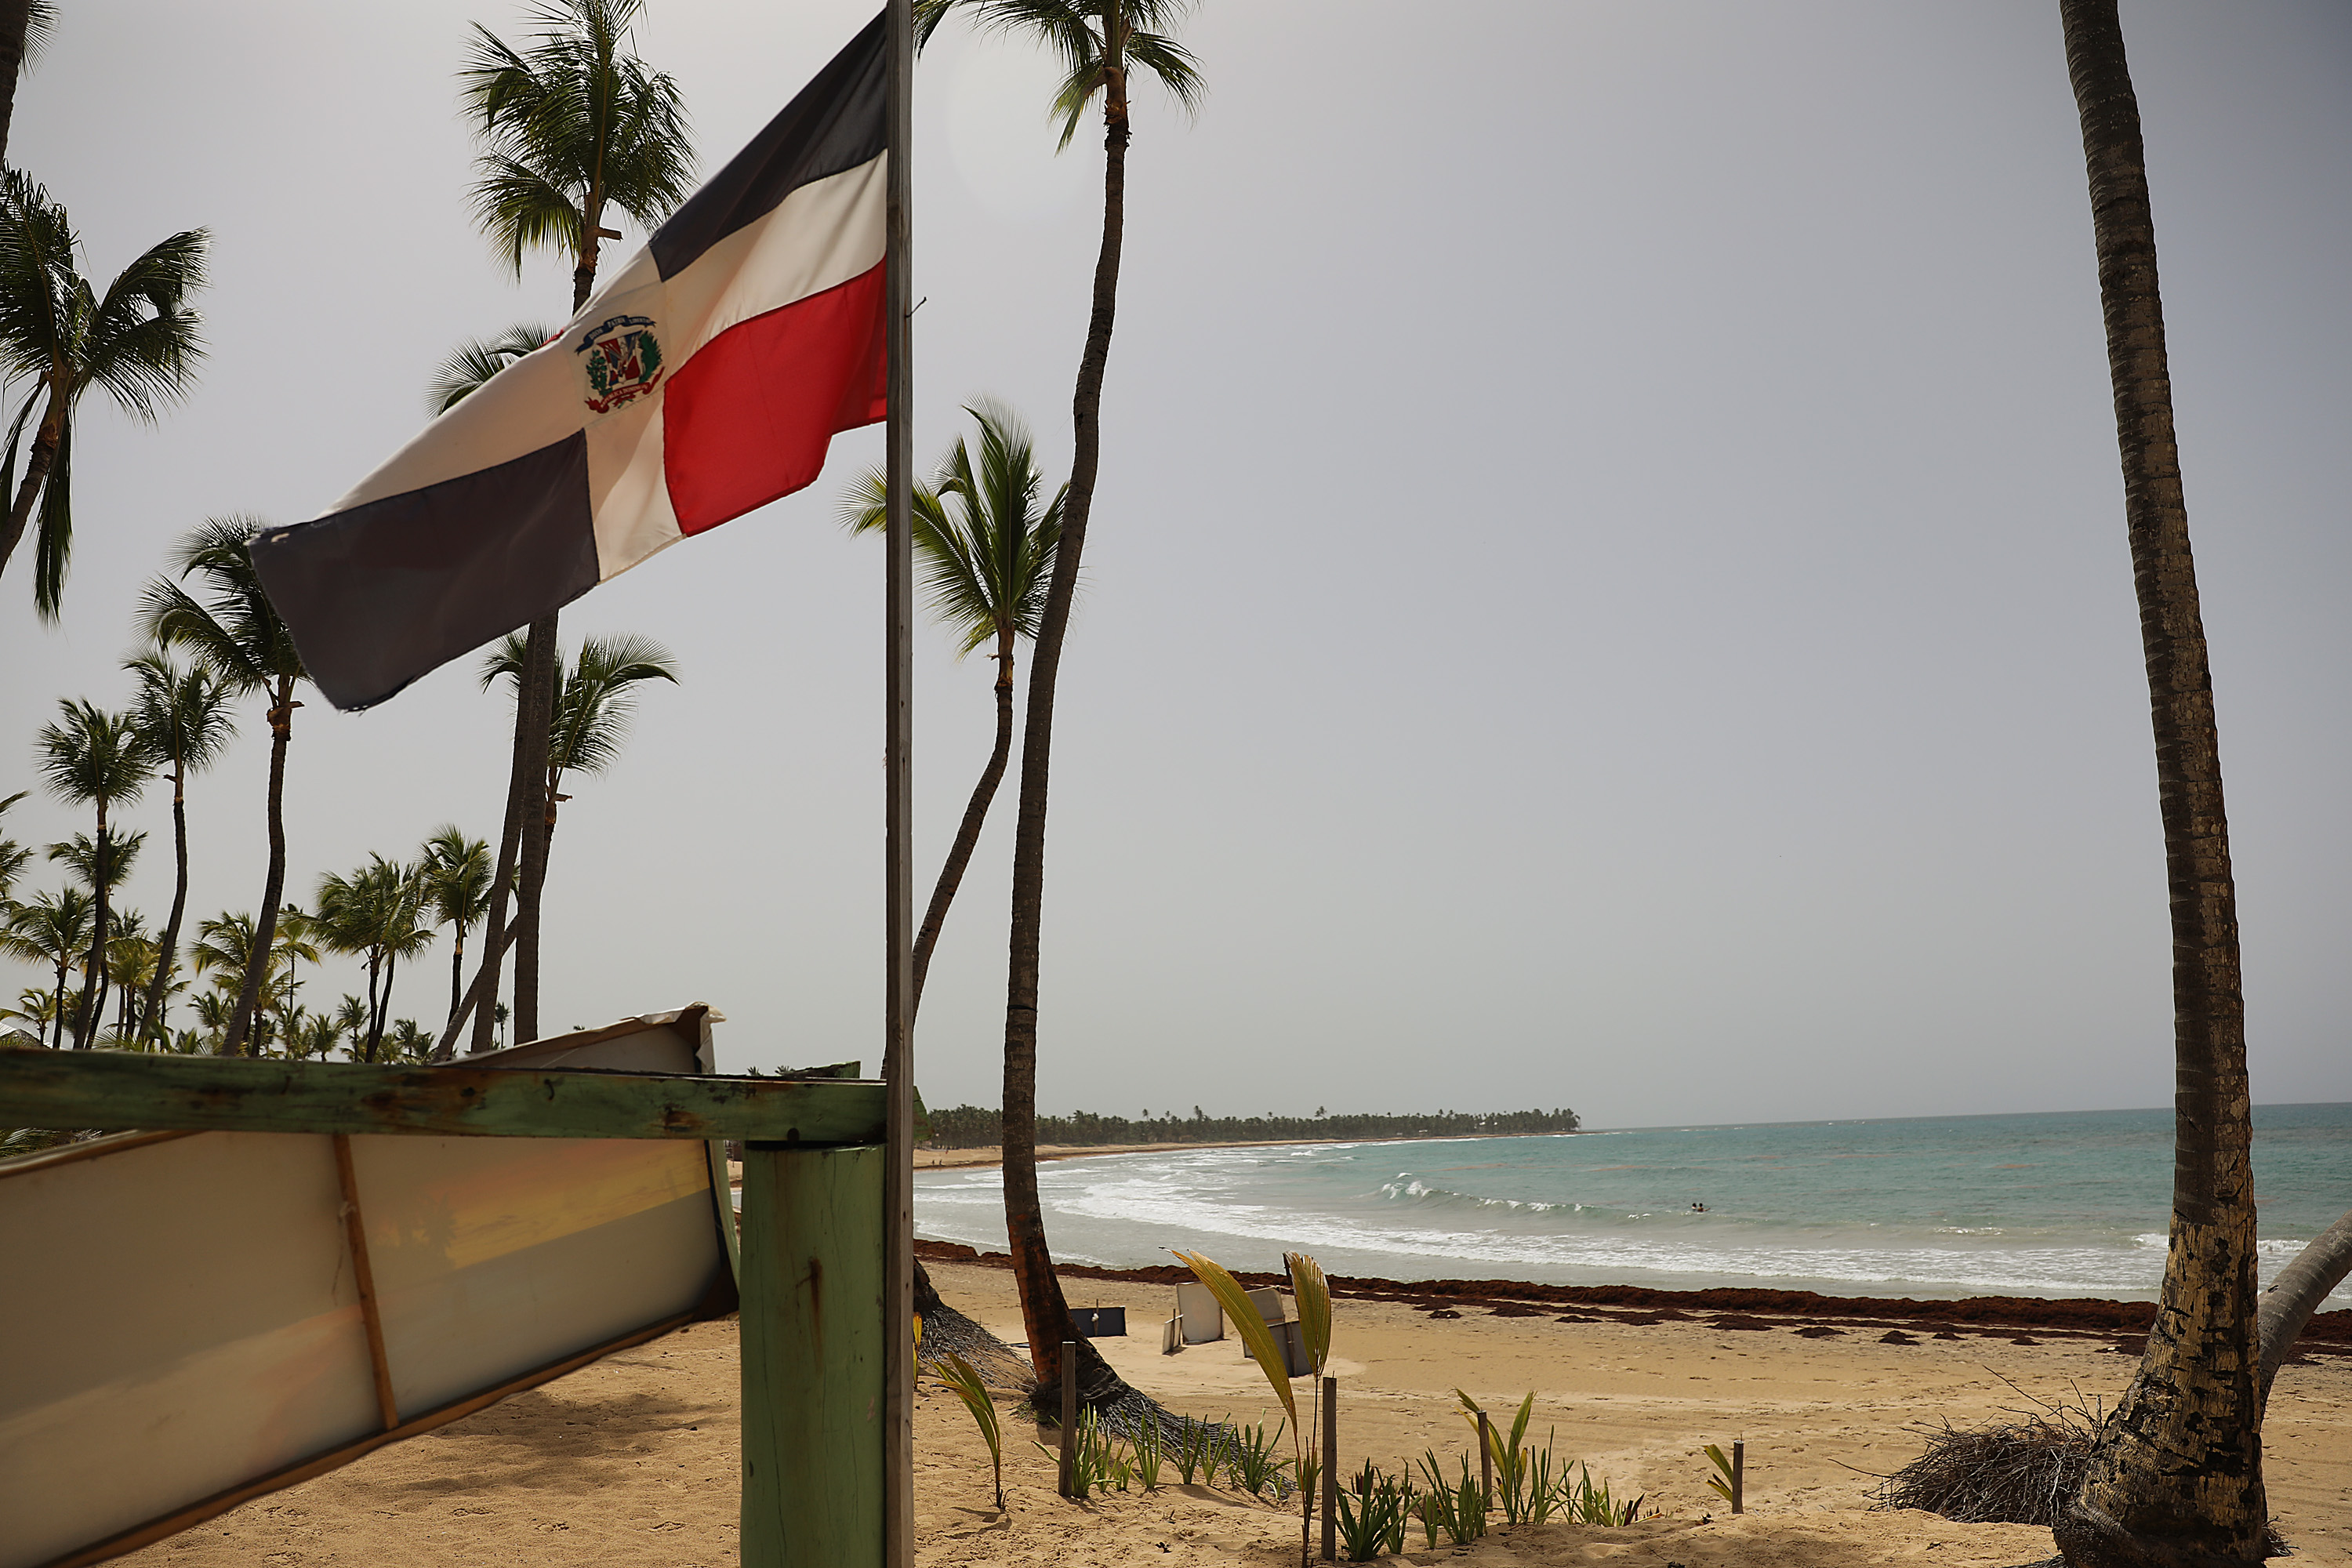 Tourist deaths in the Dominican Republic are sparking concern among travelers